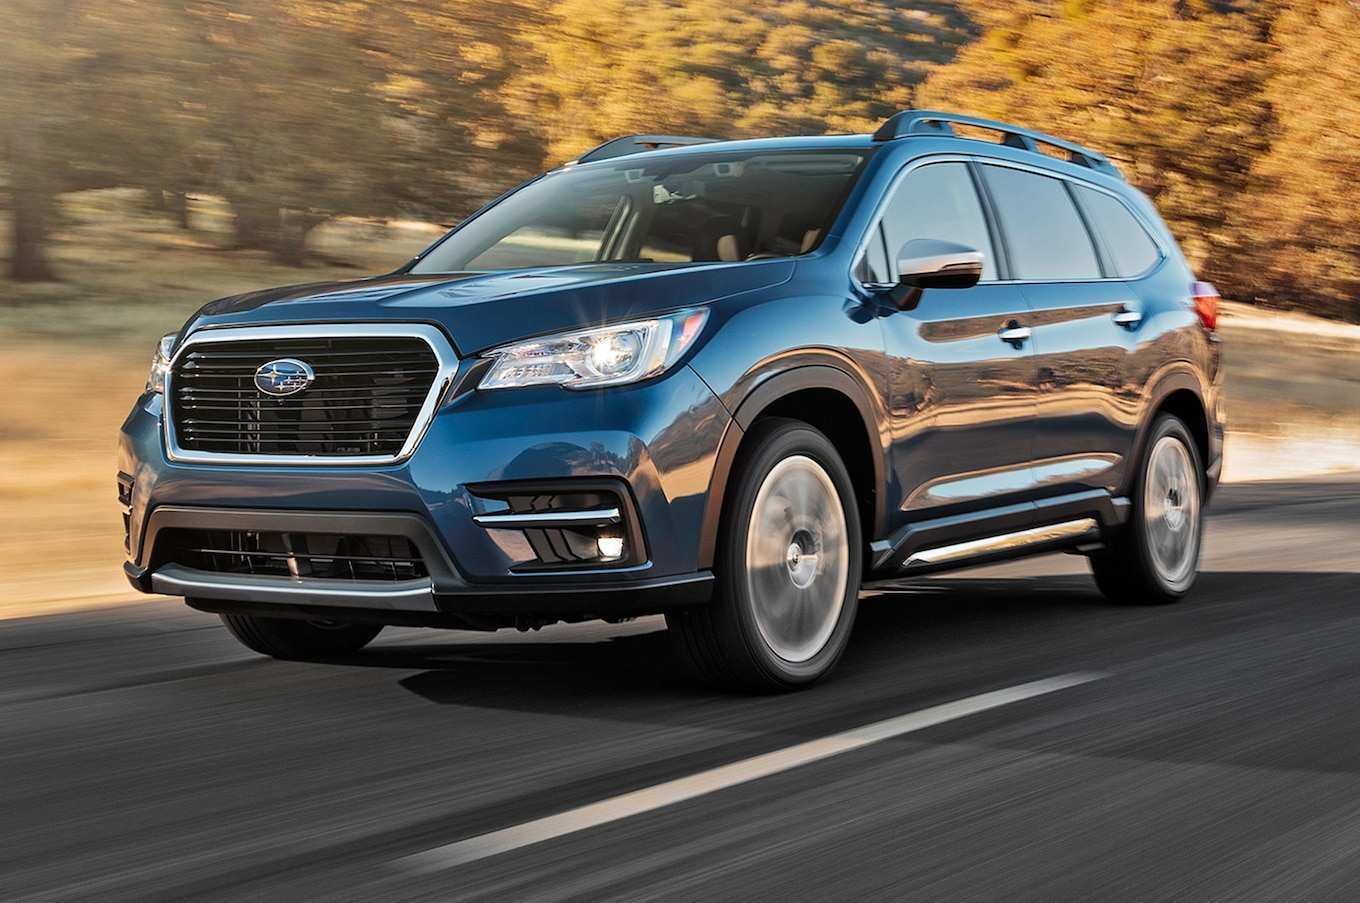 32 Gallery of 2019 Subaru Suv Configurations for 2019 Subaru Suv